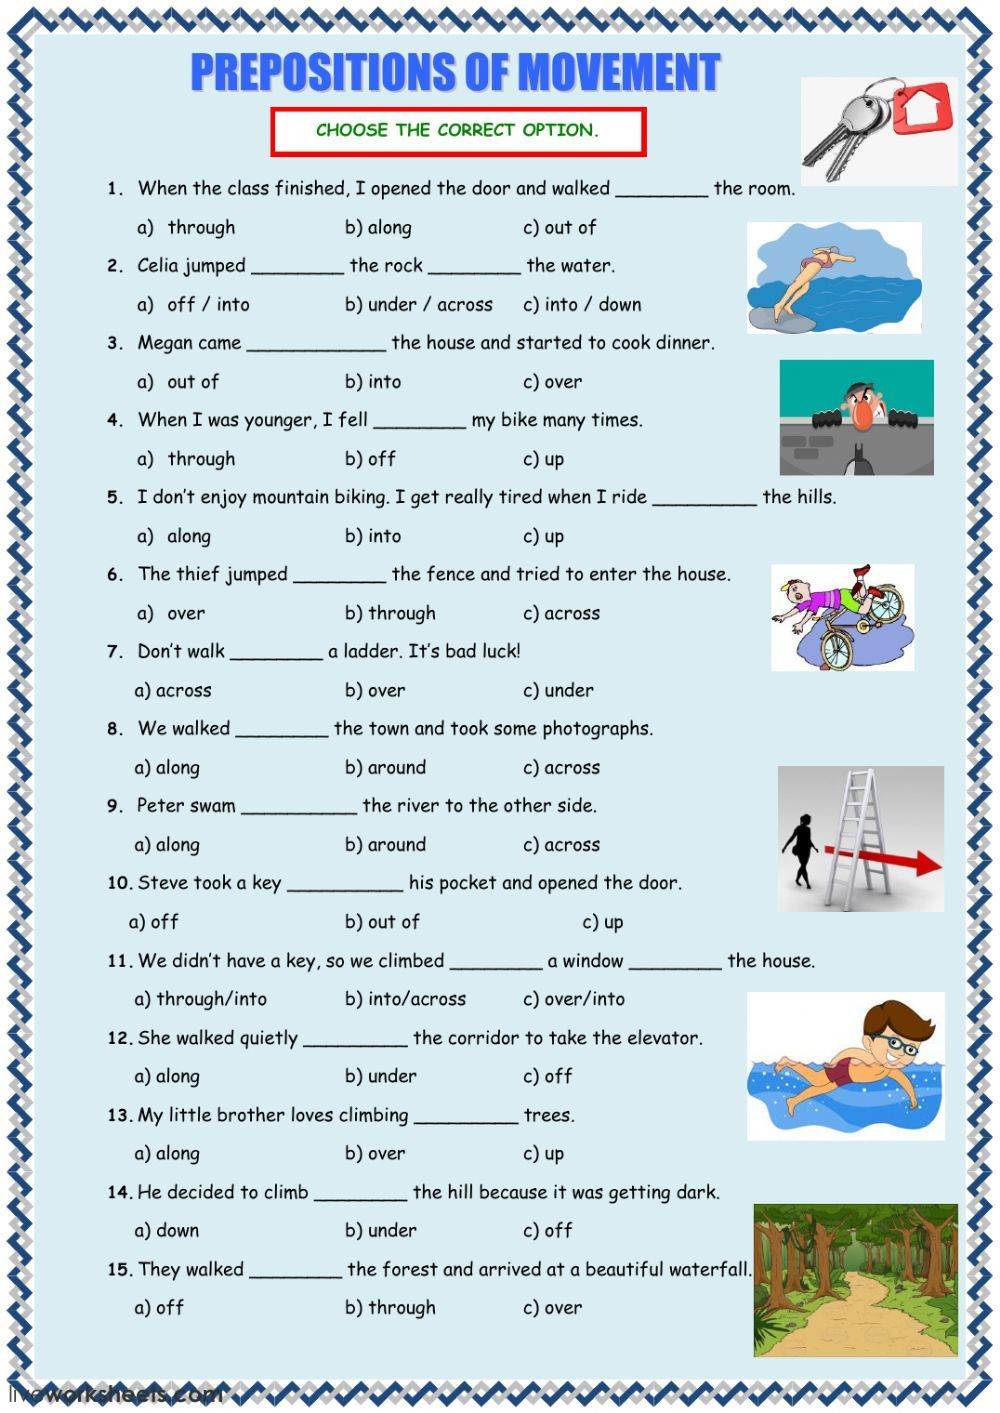 Prepositions Worksheets Middle School Prepositions Of Movement Interactive and Able